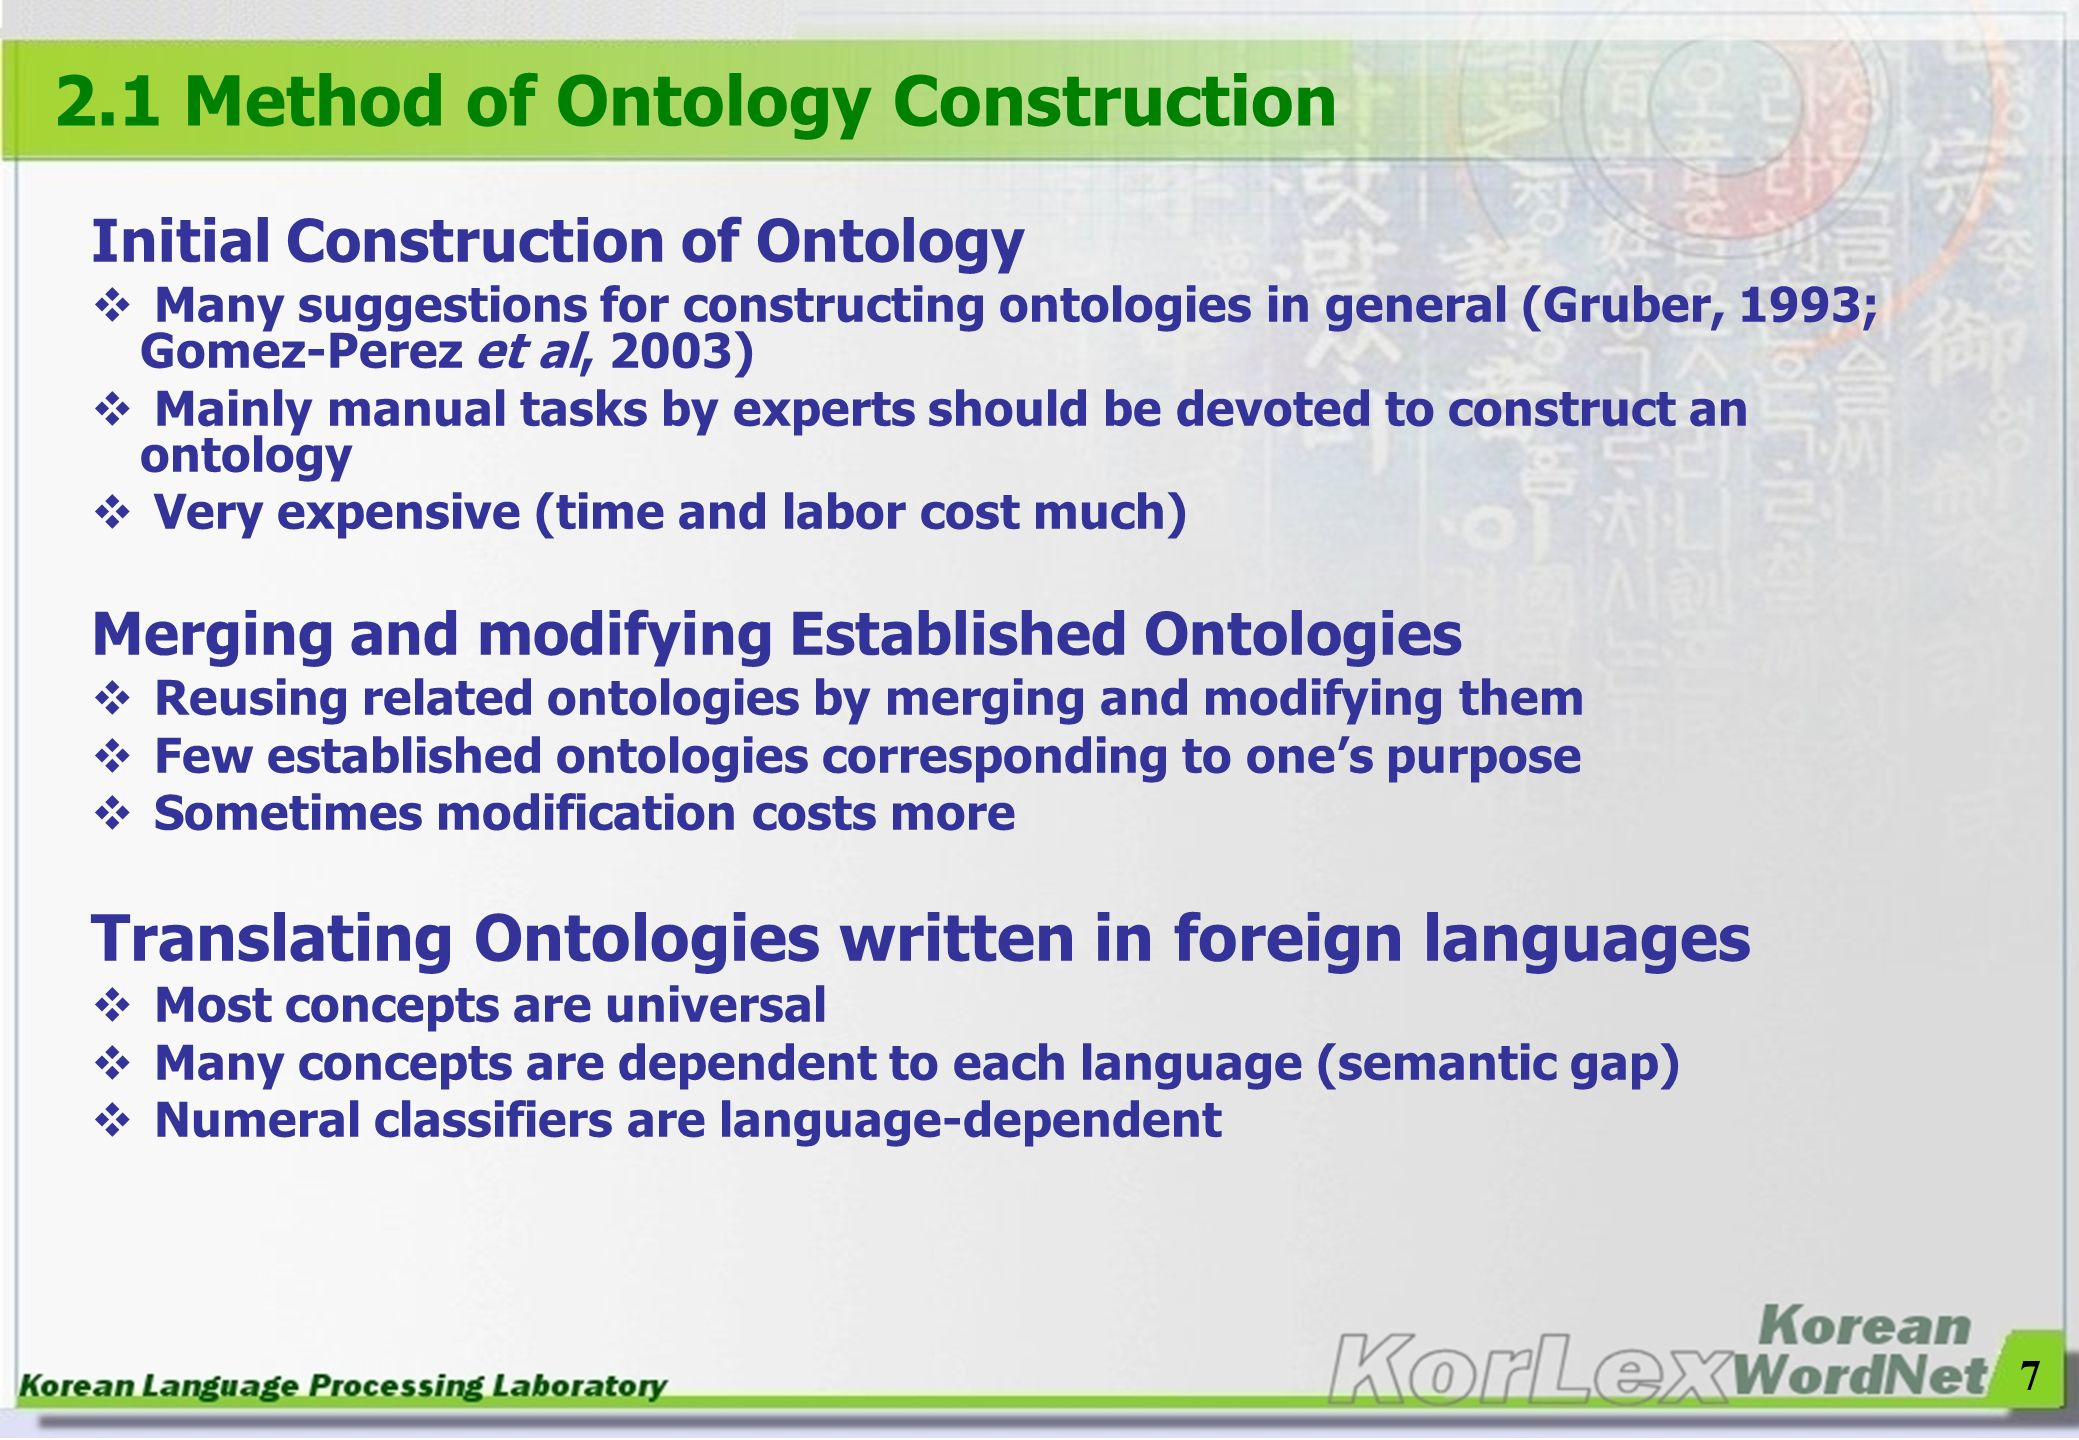 2.1 Method of Ontology Construction